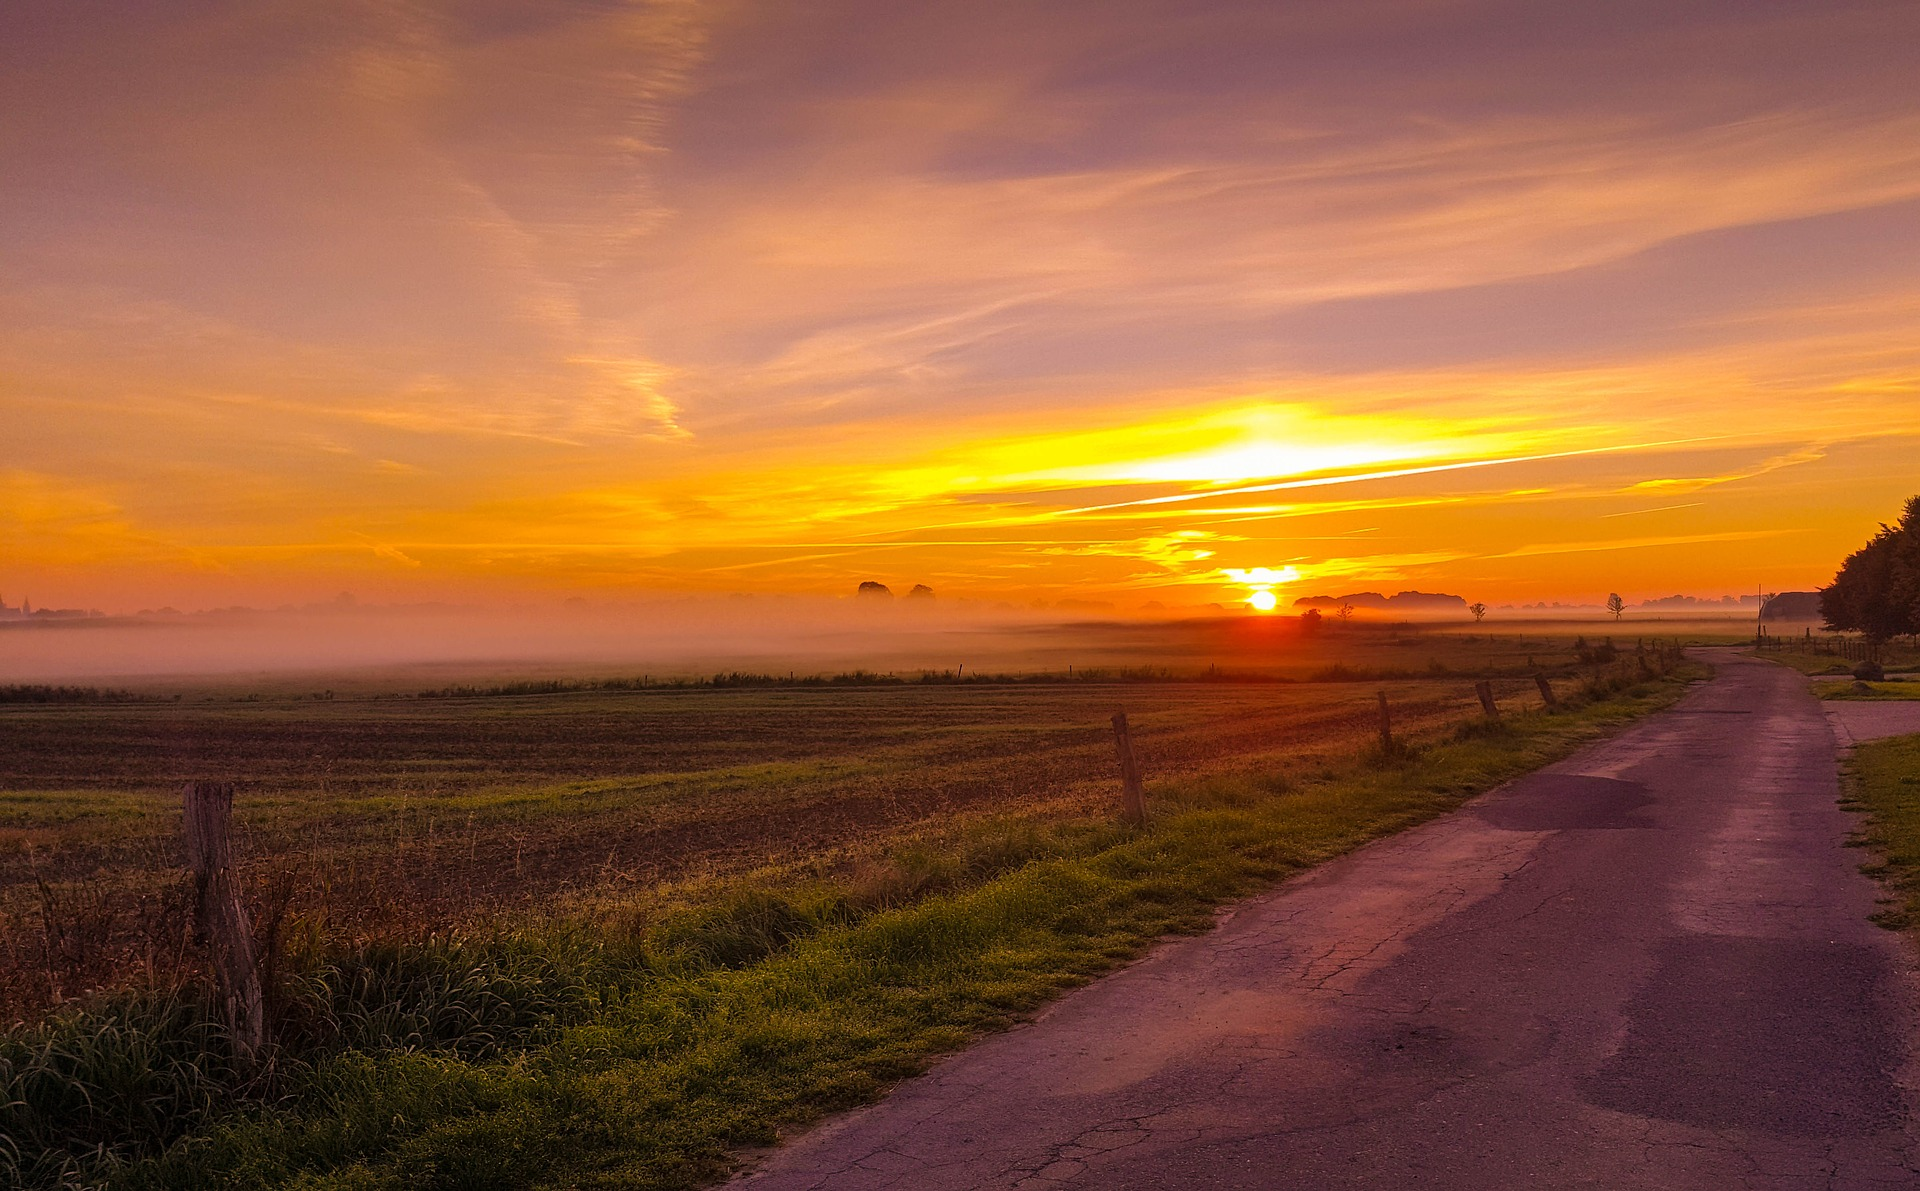 sunrise on a country road